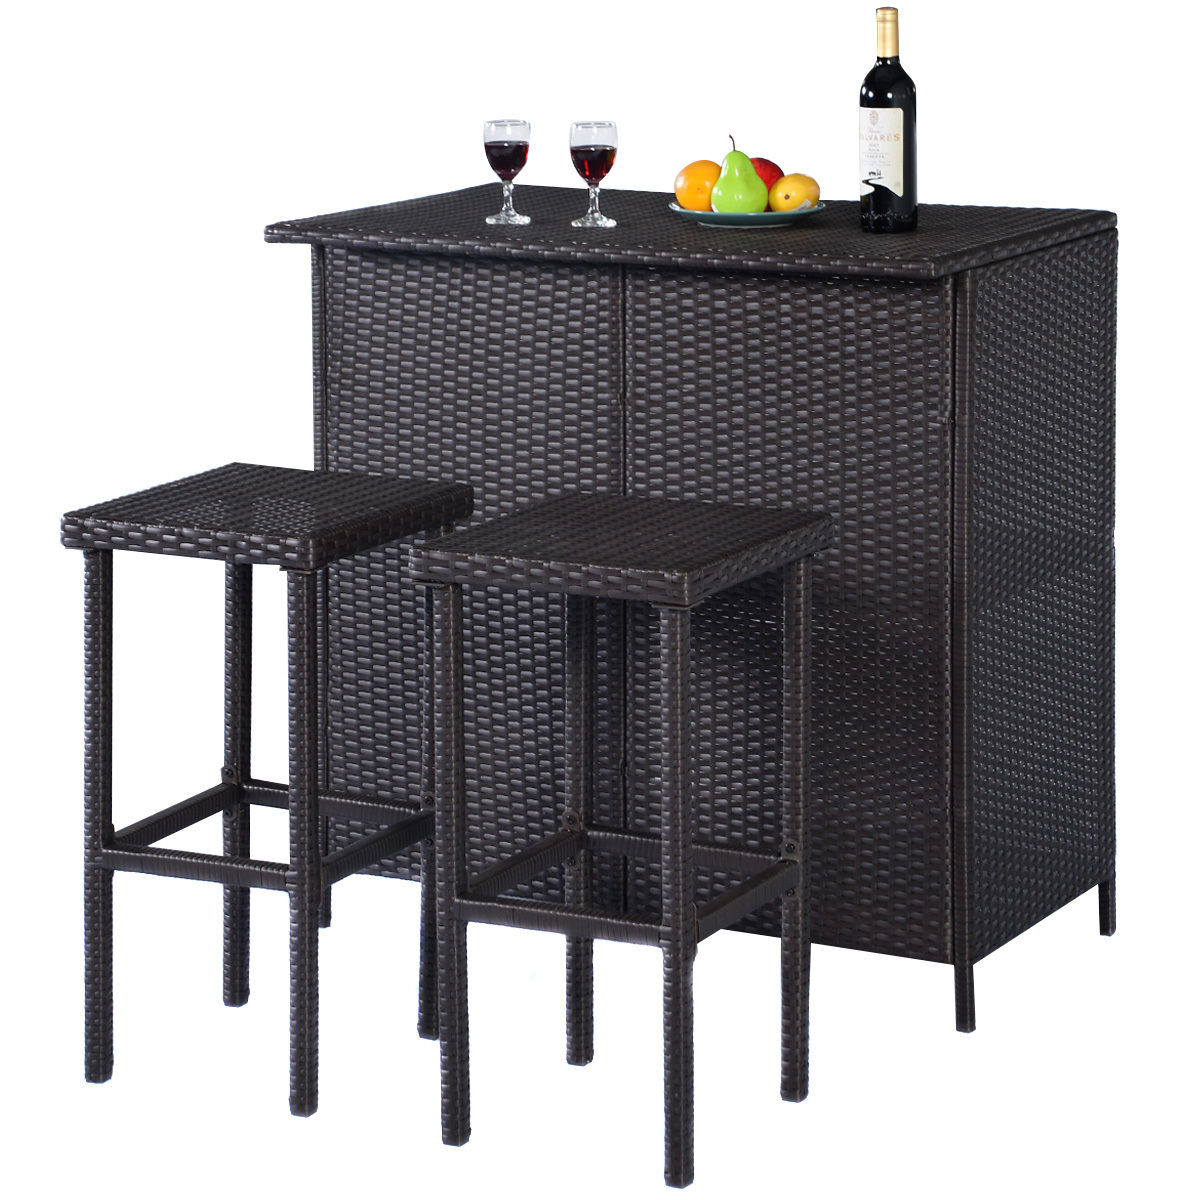 Costway 3PCS Rattan Wicker Bar Set Patio Outdoor Table U0026 2 Stools Furniture  Brown